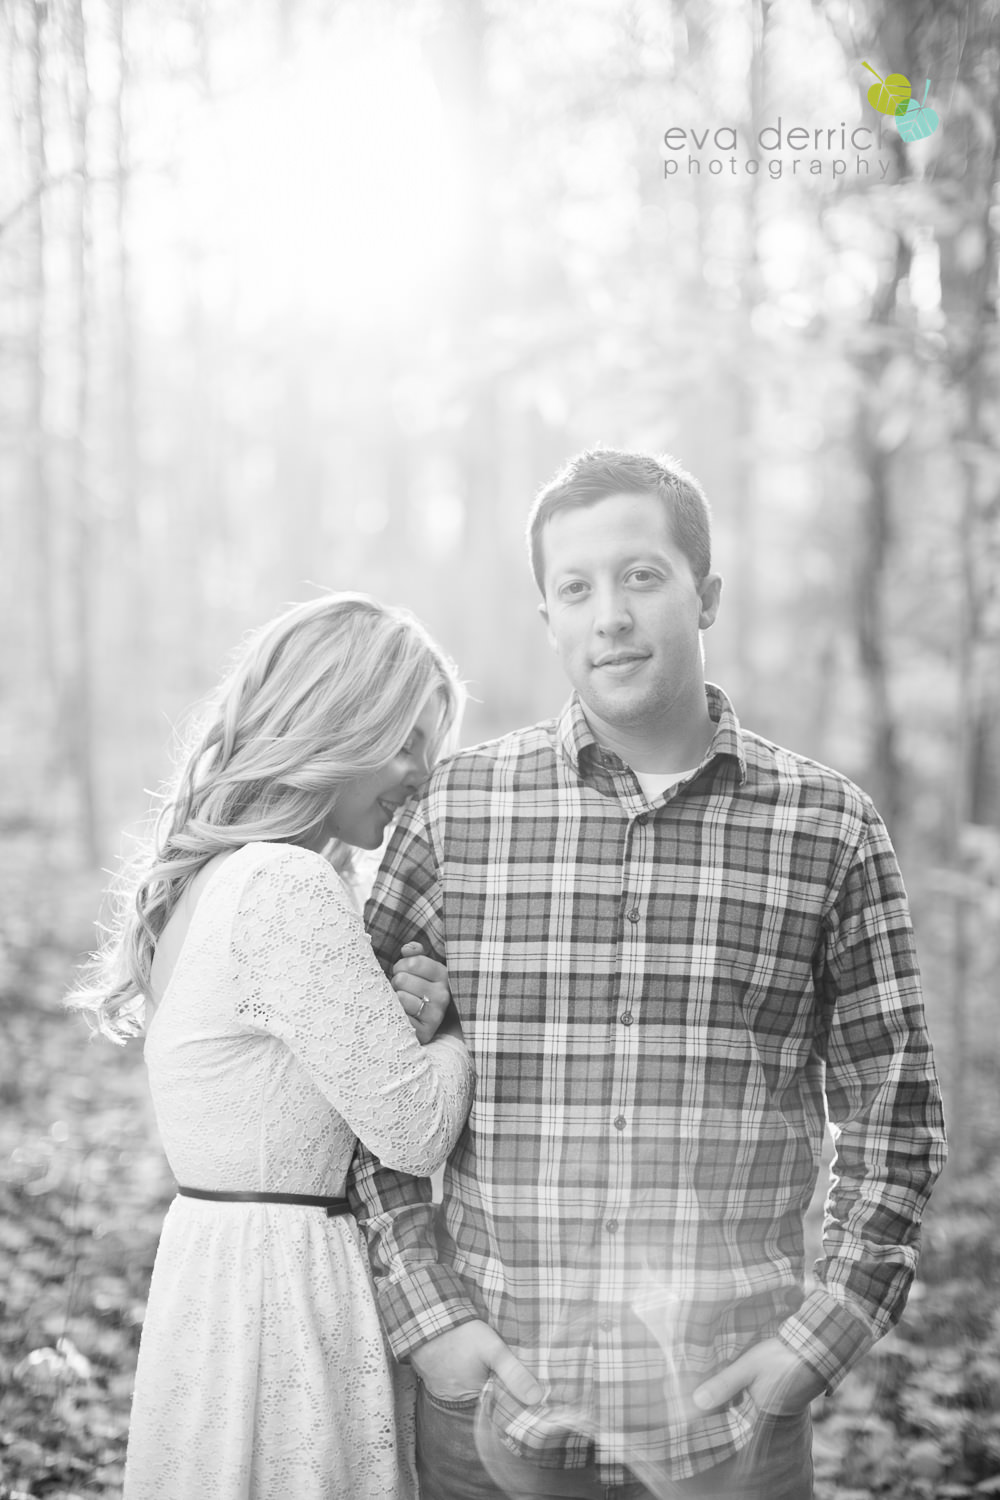 Albion-Hills-Photographer-Engagement-Session-Alanna-Matt-photography-by-Eva-Derrick-Photography-003.JPG